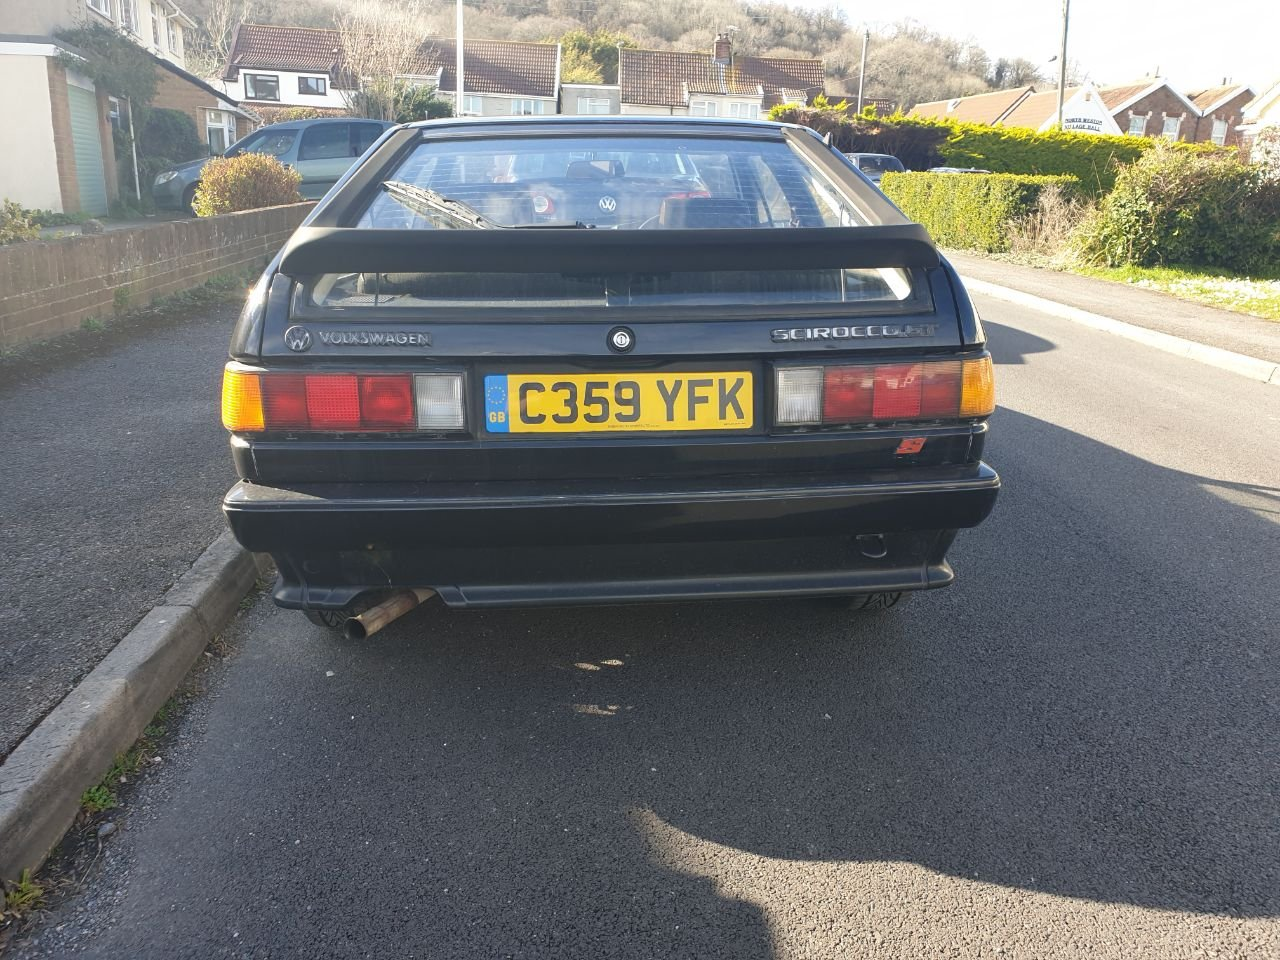 1986 Scirocco Mk2 GT S for sale (Low mileage) For Sale (picture 2 of 6)